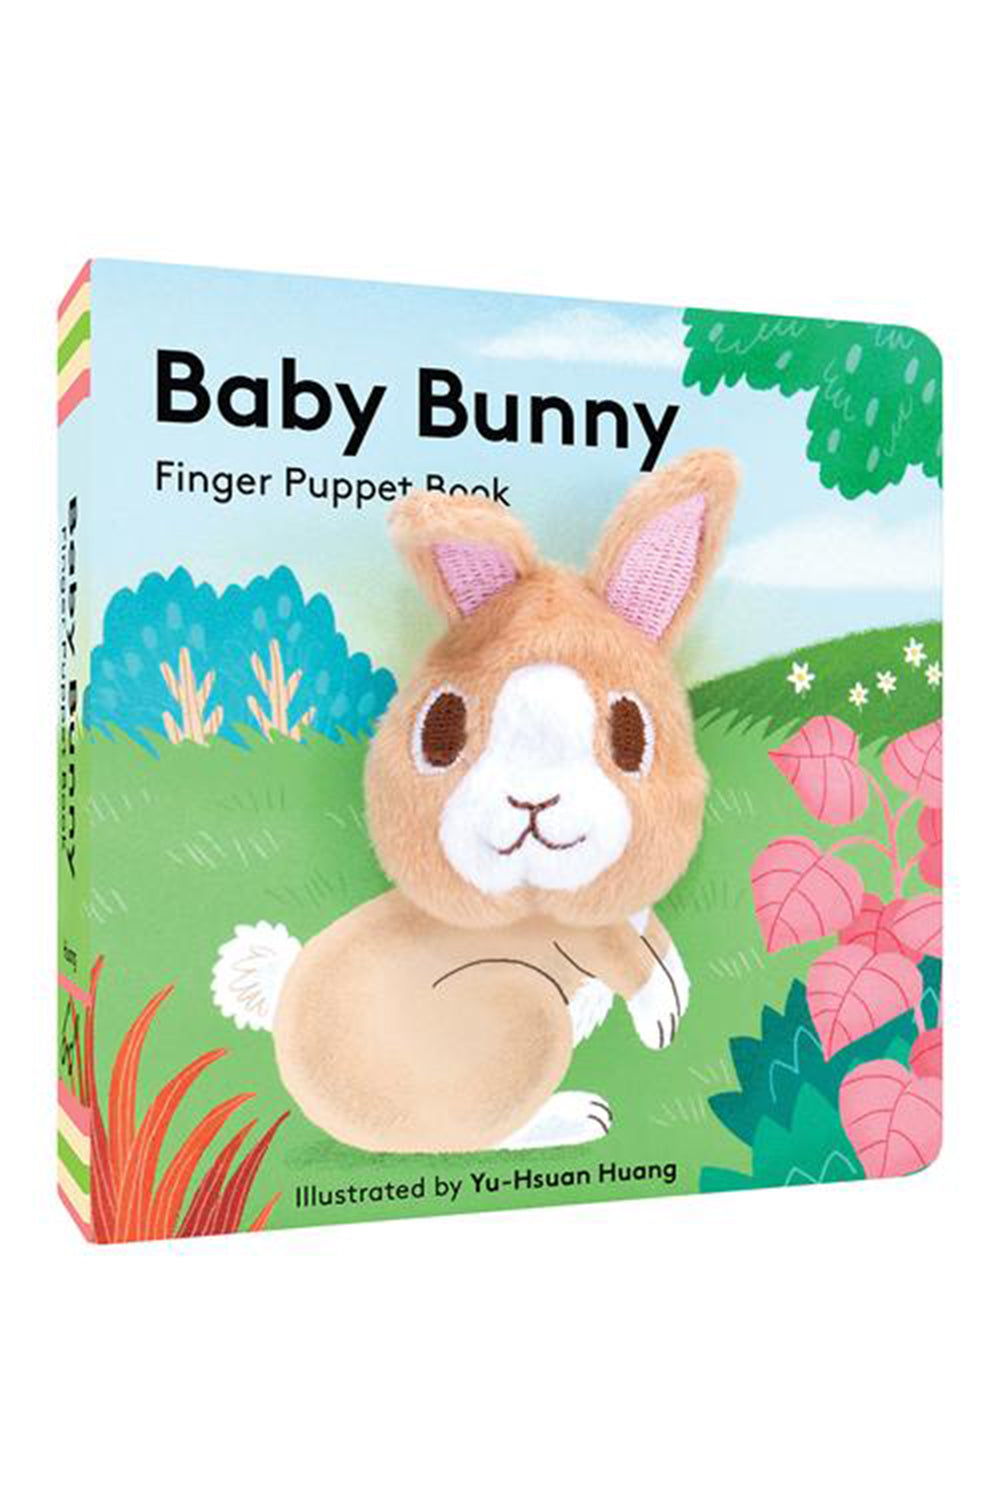 Finger Puppet Book - Baby Bunny